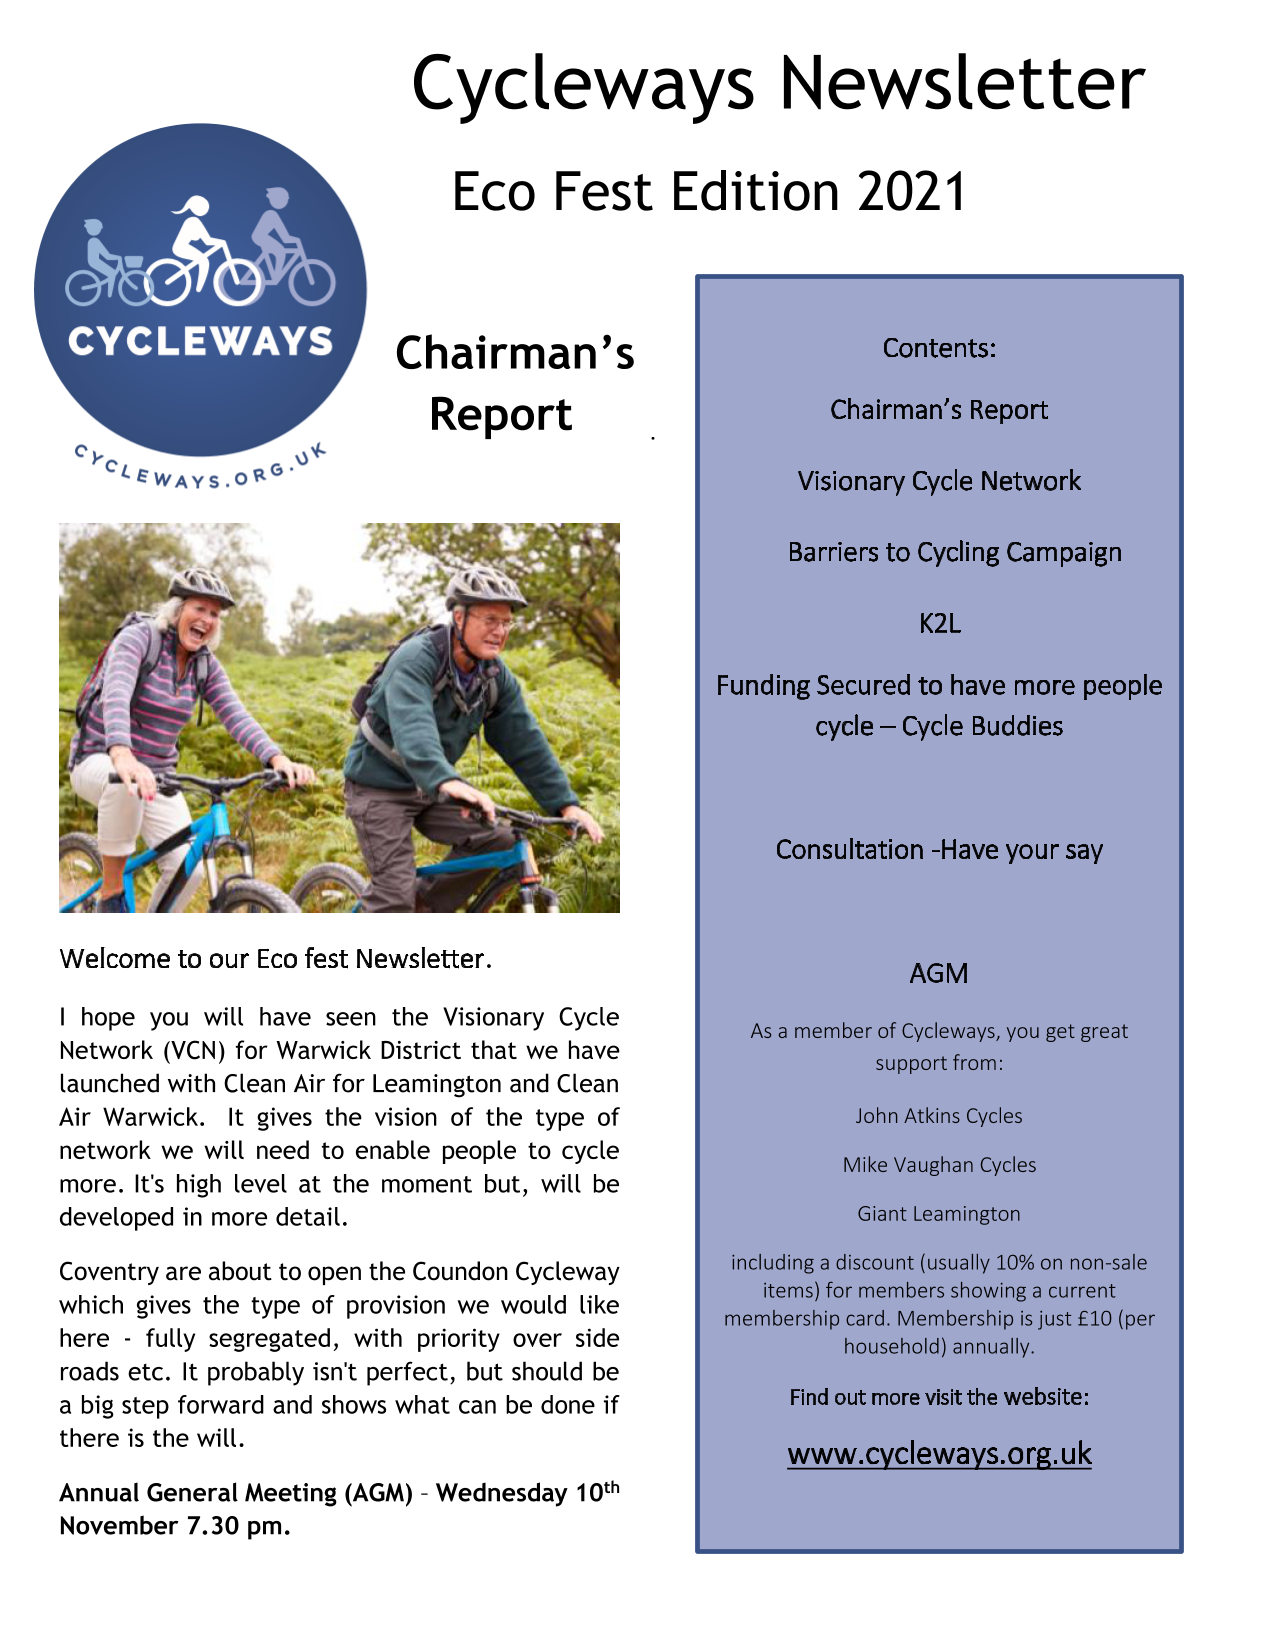 Cycleways Newsletter Eco fest 2021 V 1.1_page1